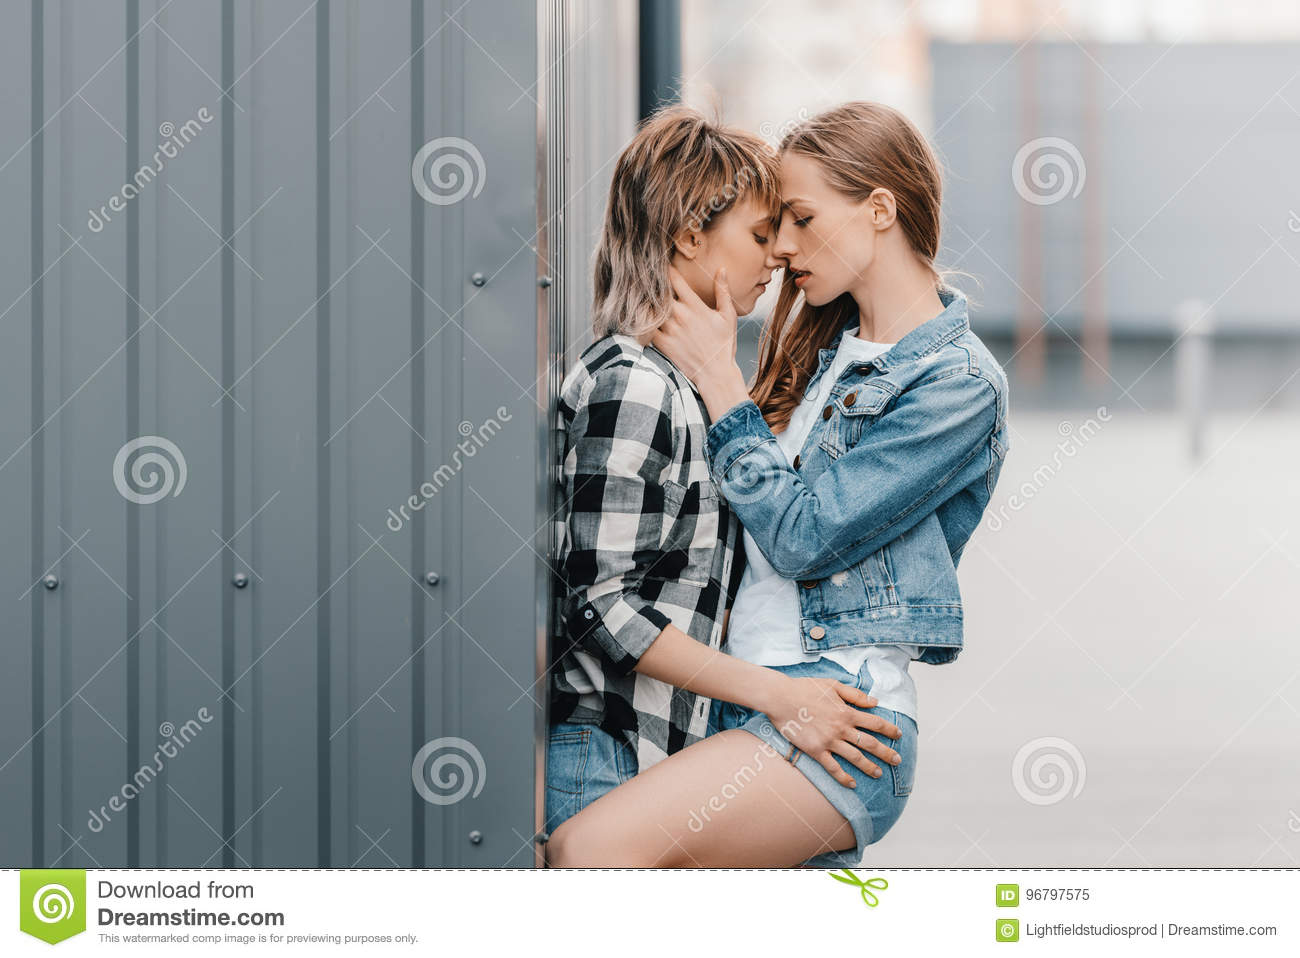 lesbian couple hugging stock photos - 633 images